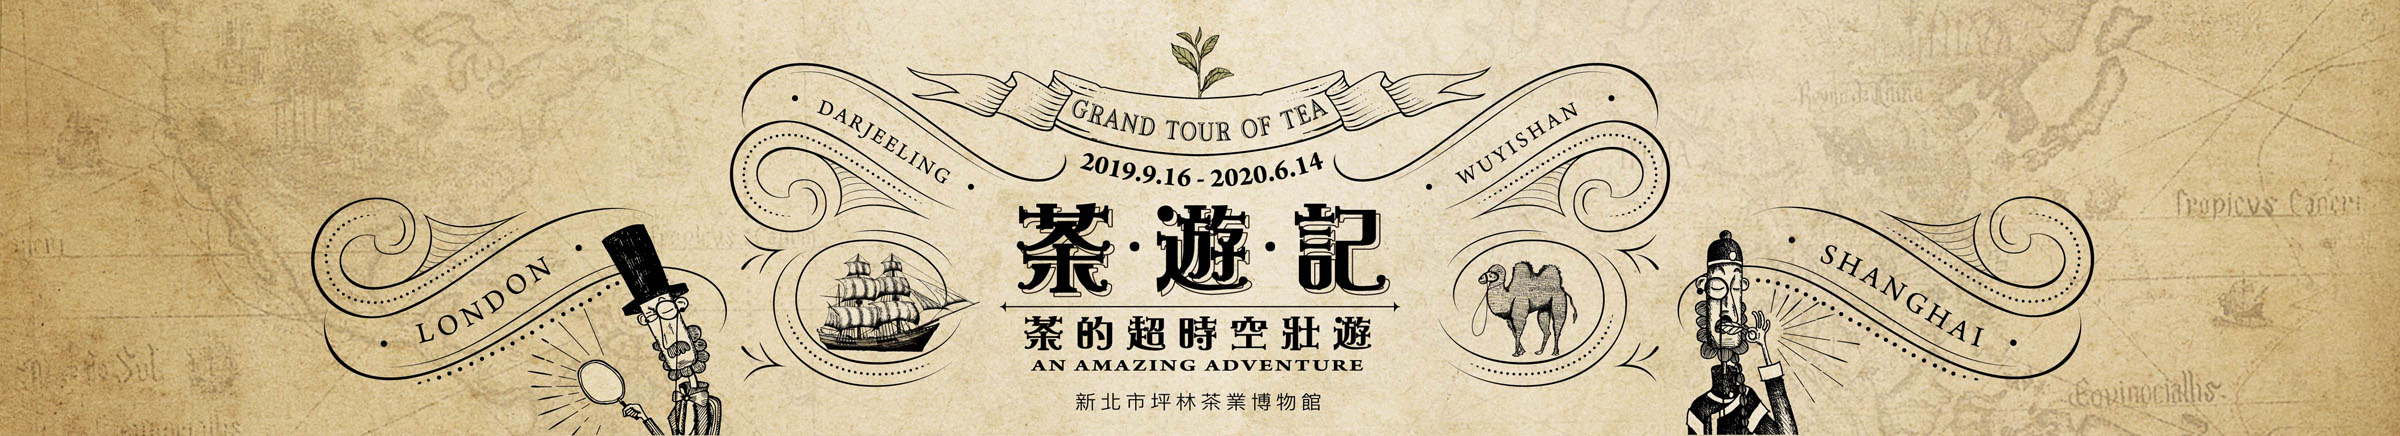 Grand Tour of Tea - An Amazing Journey